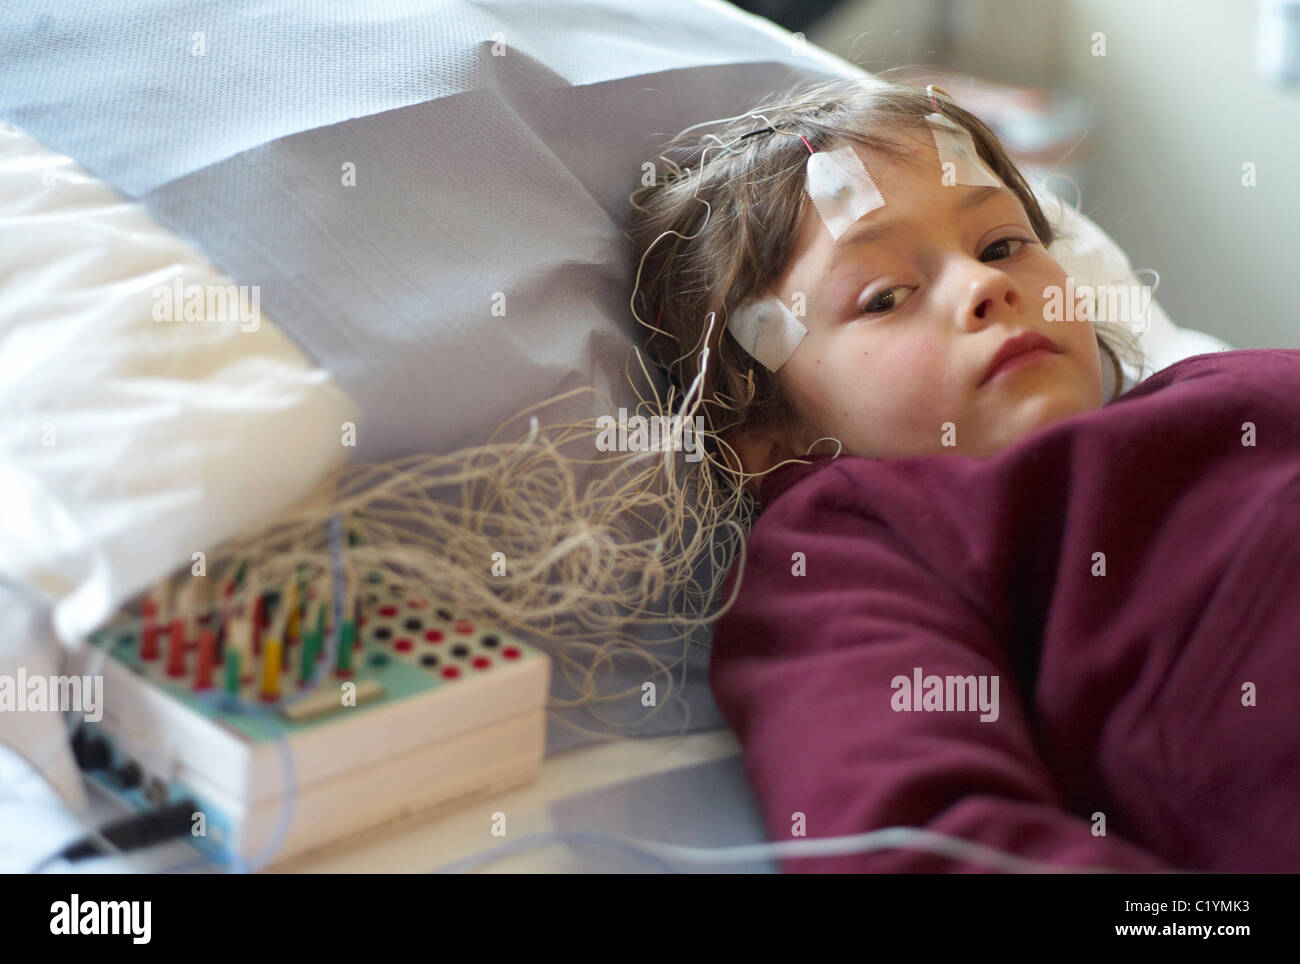 Child in a hospital out patient department undergoing an EEG or brain scan - Stock Image